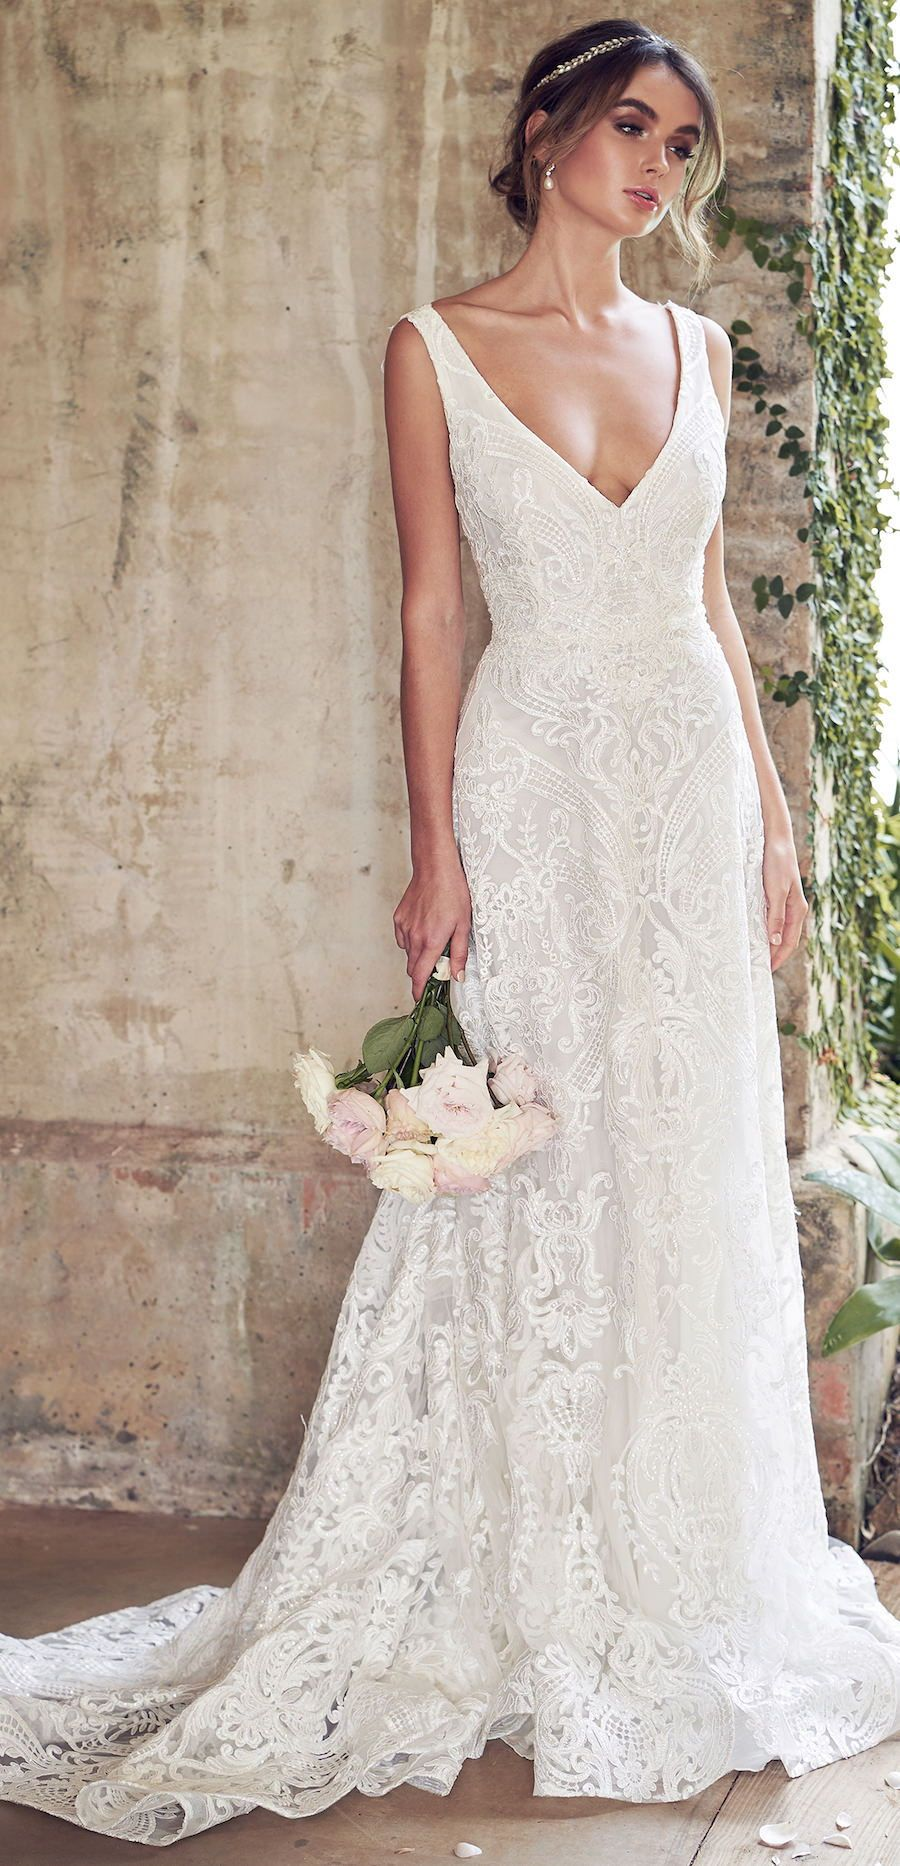 Wedding Dress By Anna Cbell Jamie Bold Unique Corded Lace Embroidered With Sequins Shimmer Bridal Gown Romantic Multiple: Short Wedding Dresses Romantic Flowy At Reisefeber.org